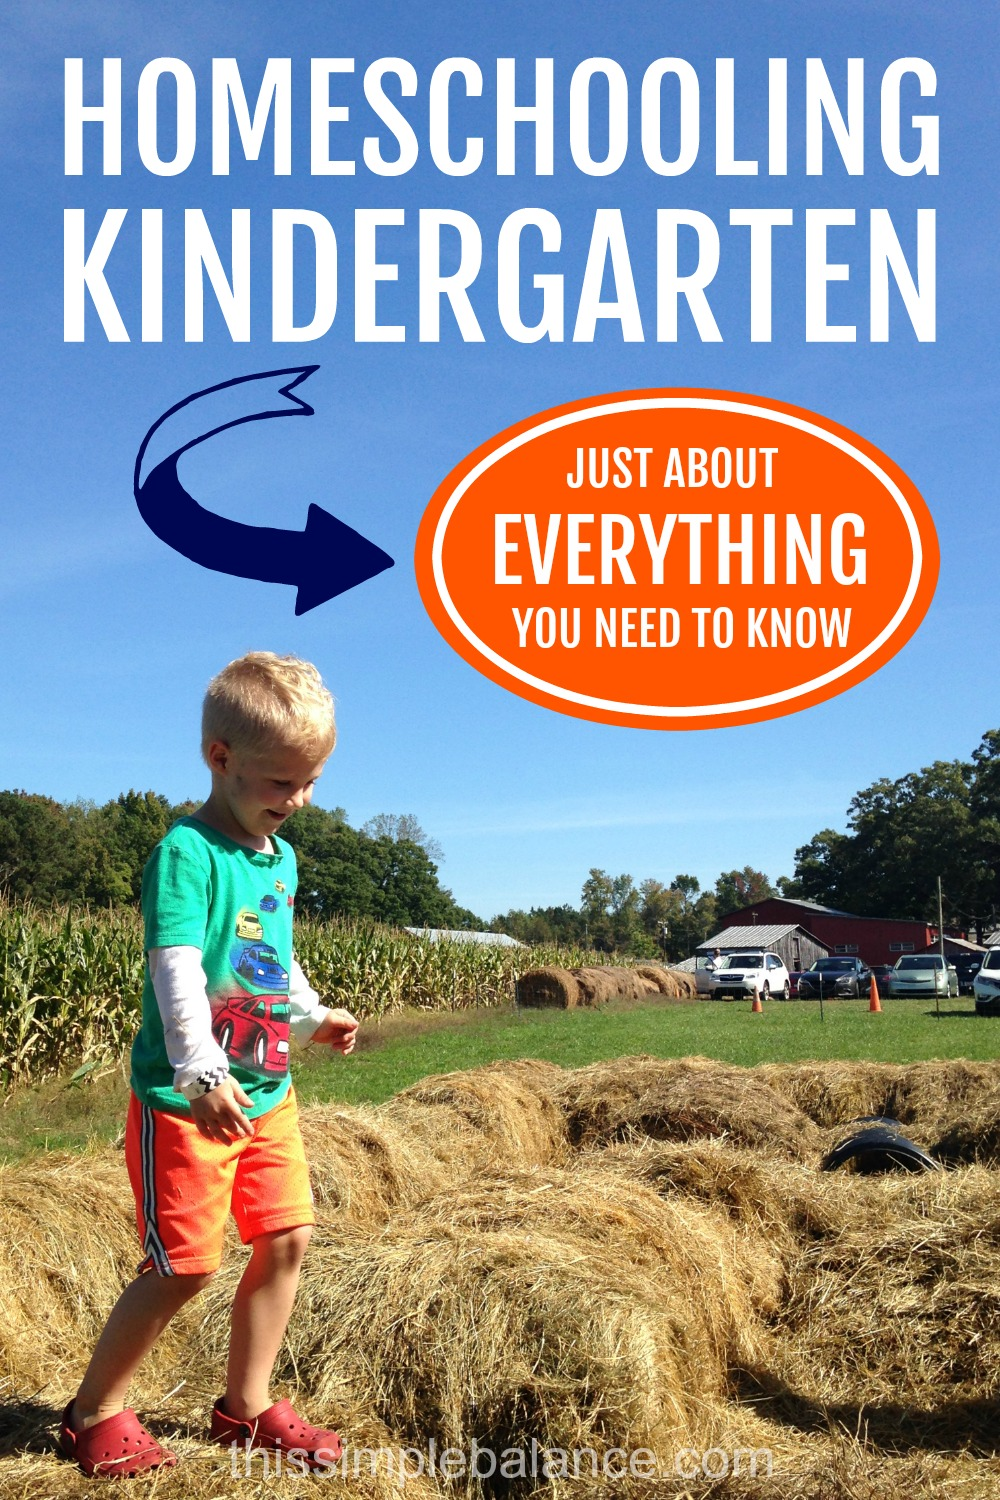 Homeschool Kindergarten with confidence using these ideas and tips. 6 essential elements, plus answers to commonly asked questions about homeschooling kindergarten.